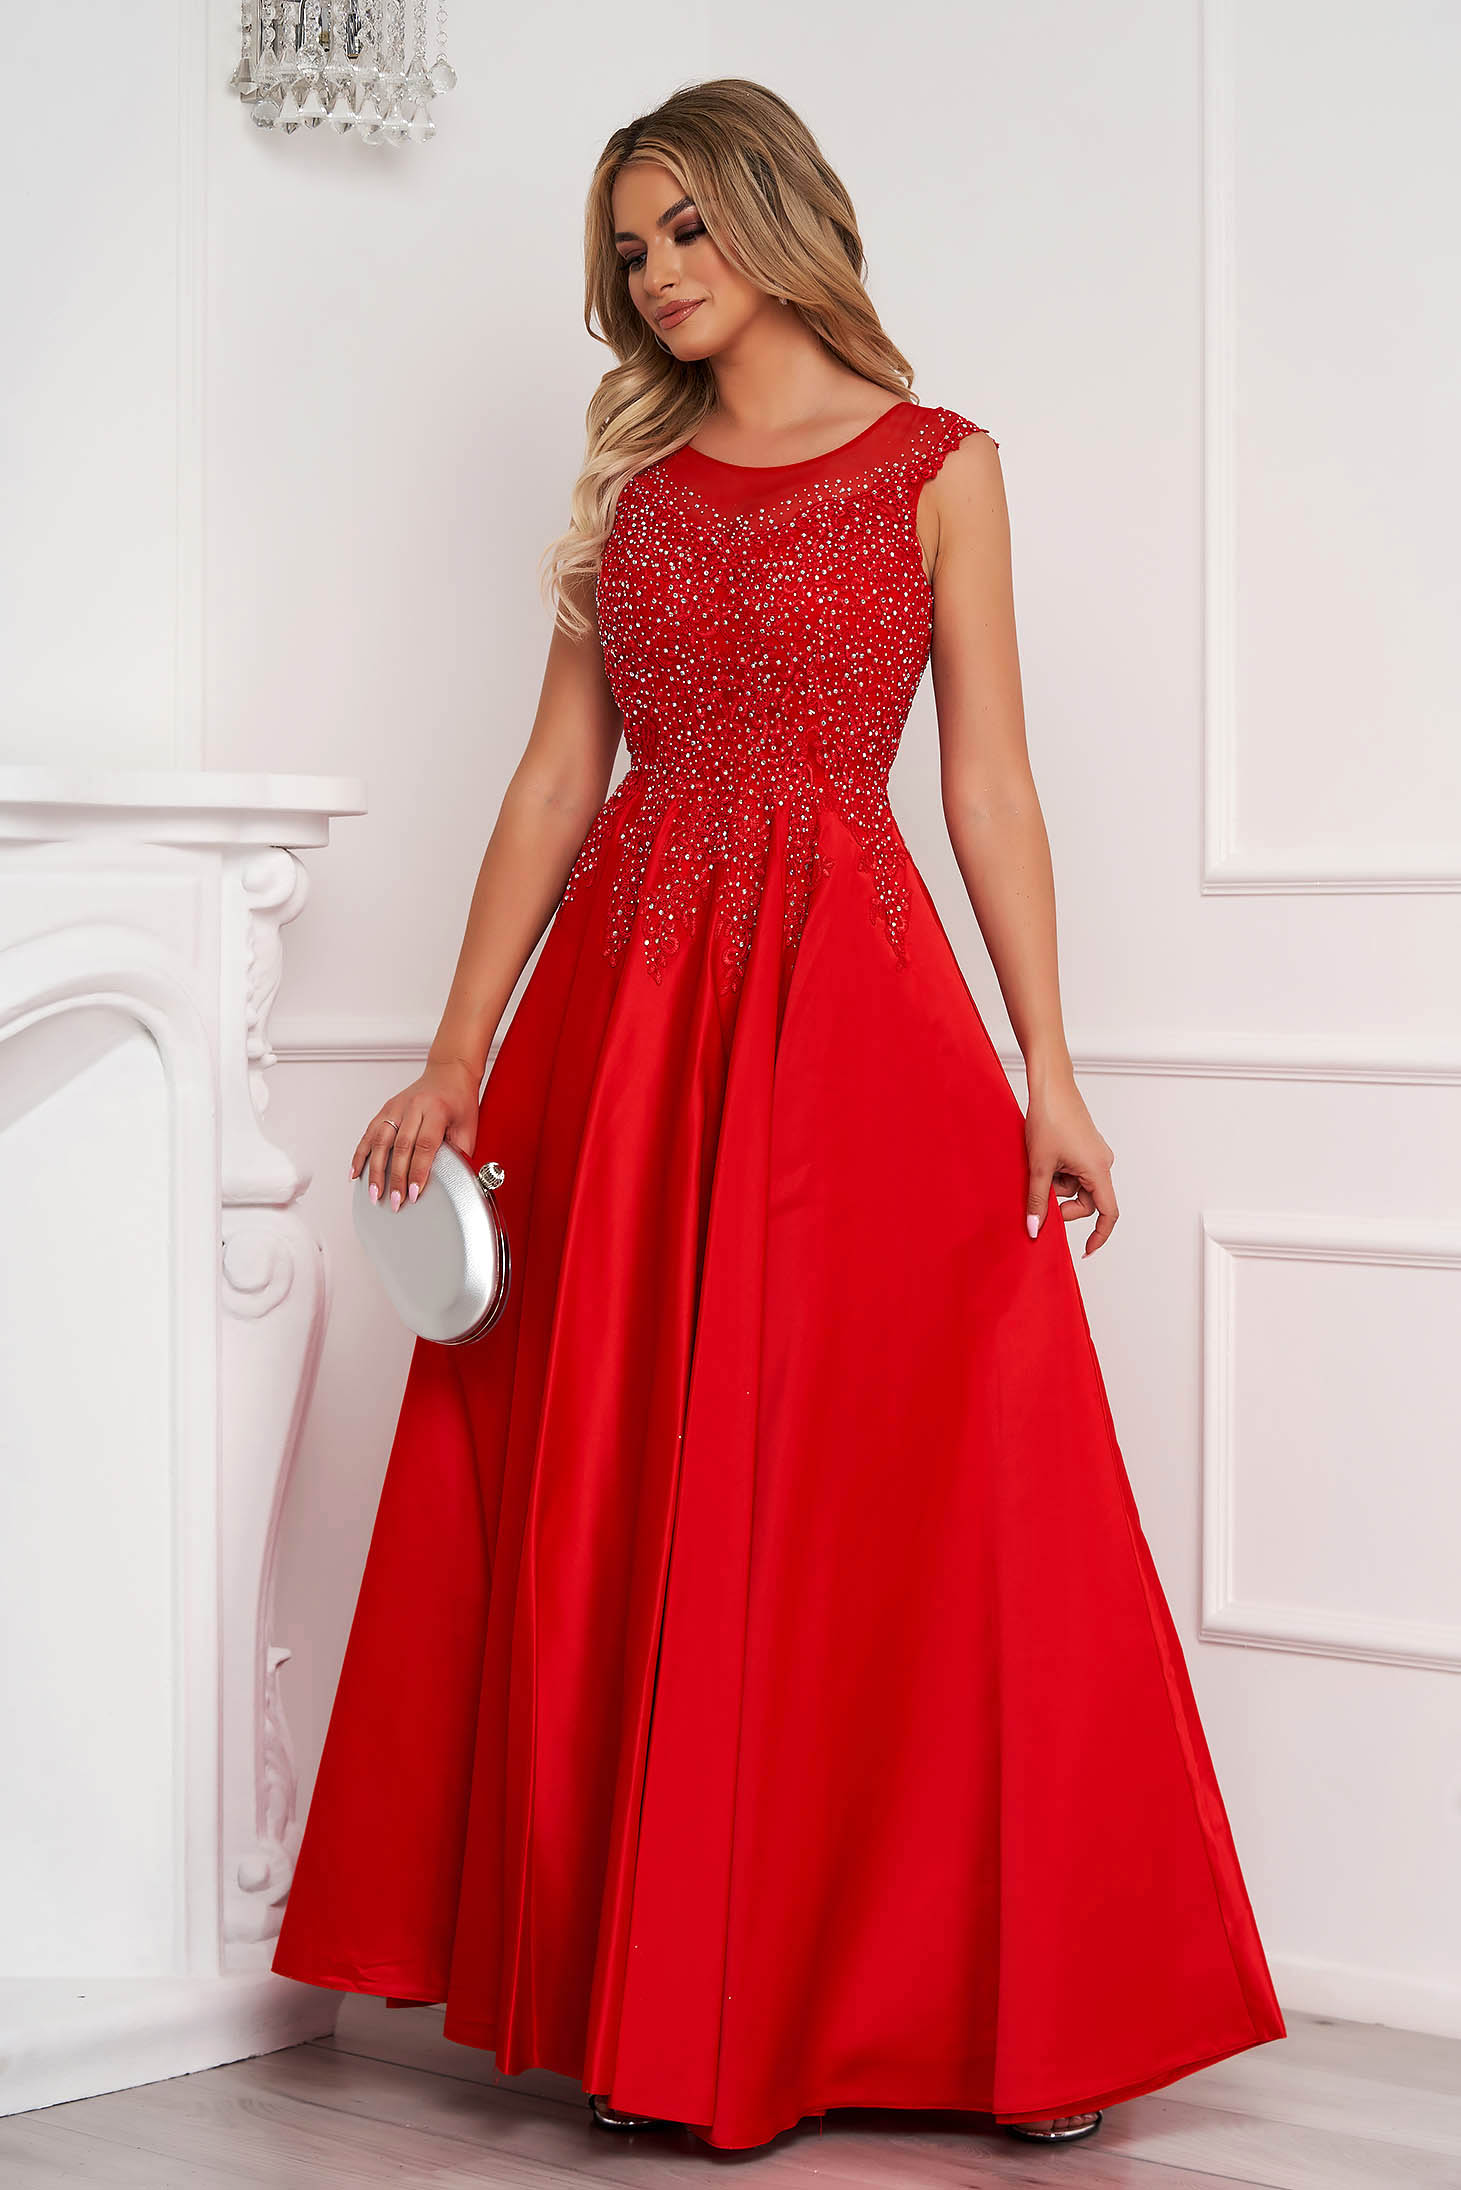 Red dress long cloche sleeveless with crystal embellished details occasional